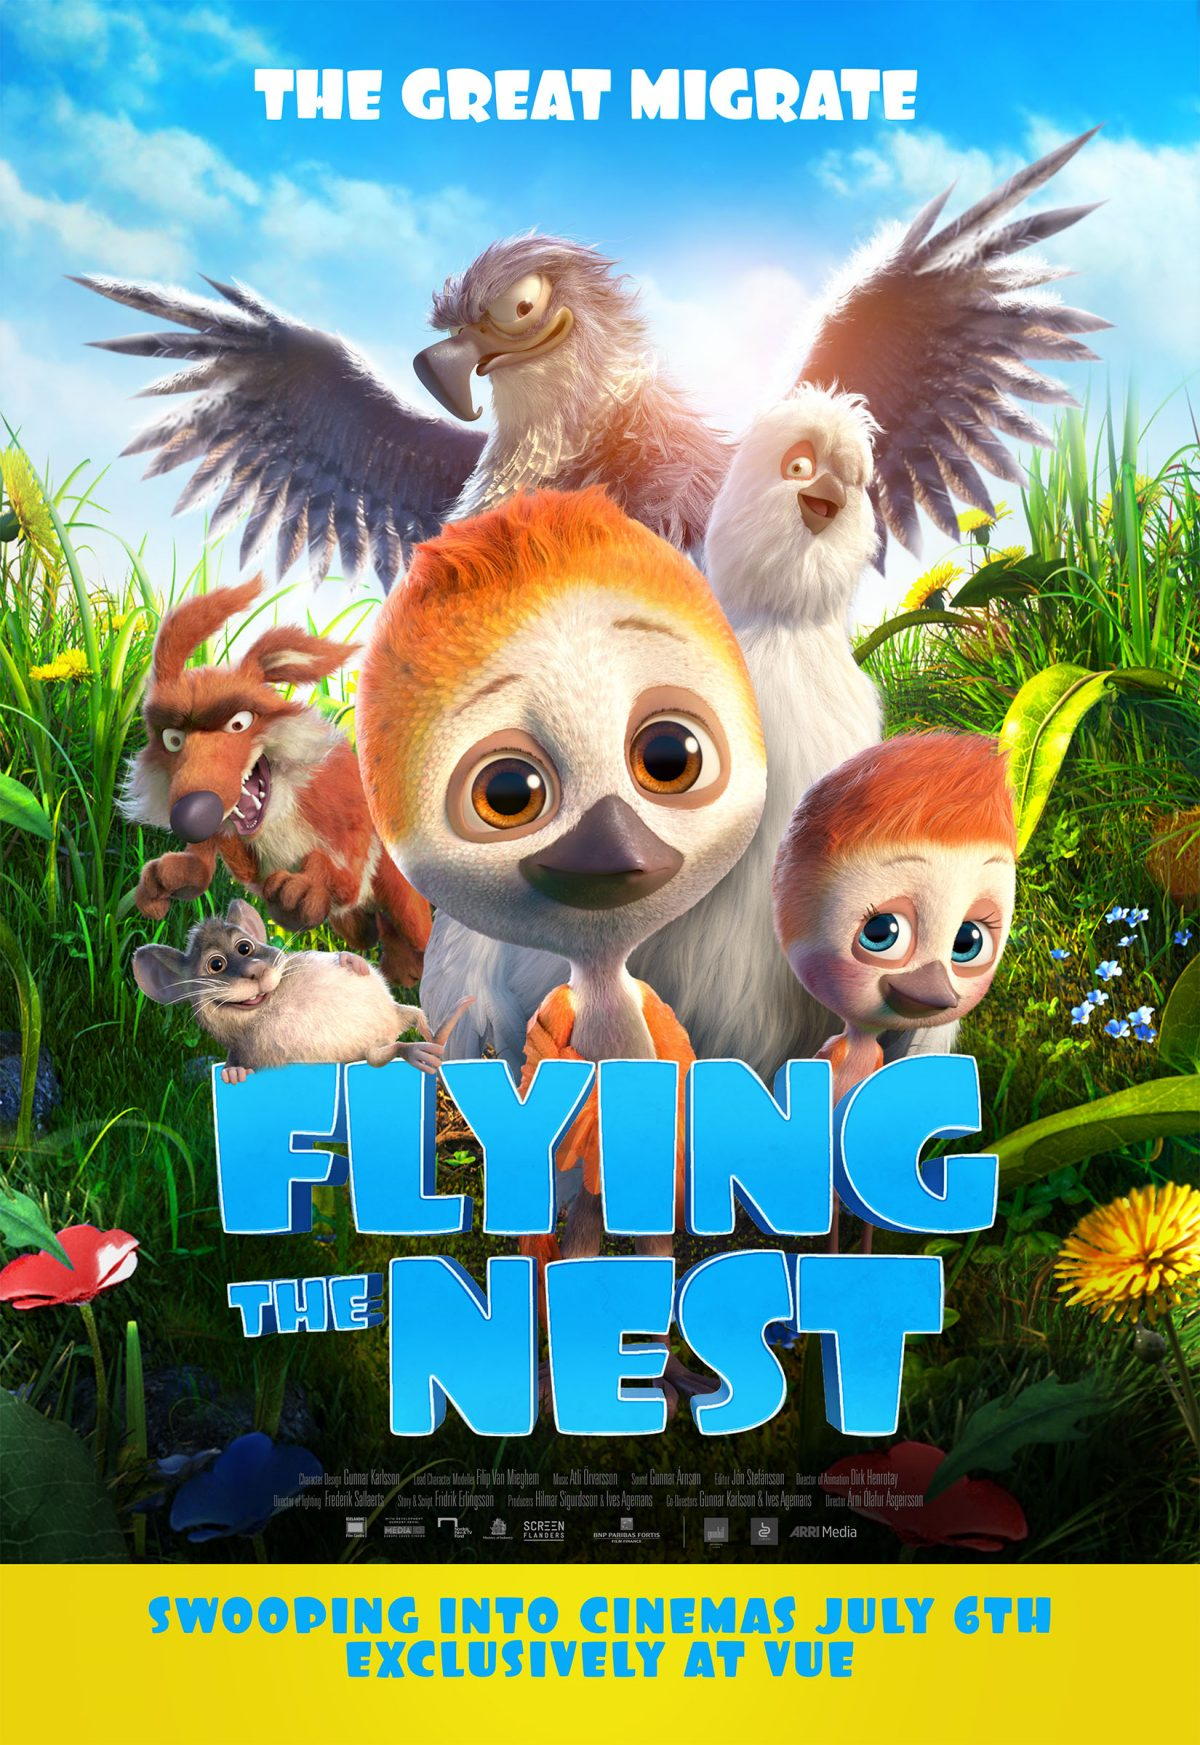 Flying The Nest Lands with a New Trailer and Artwork